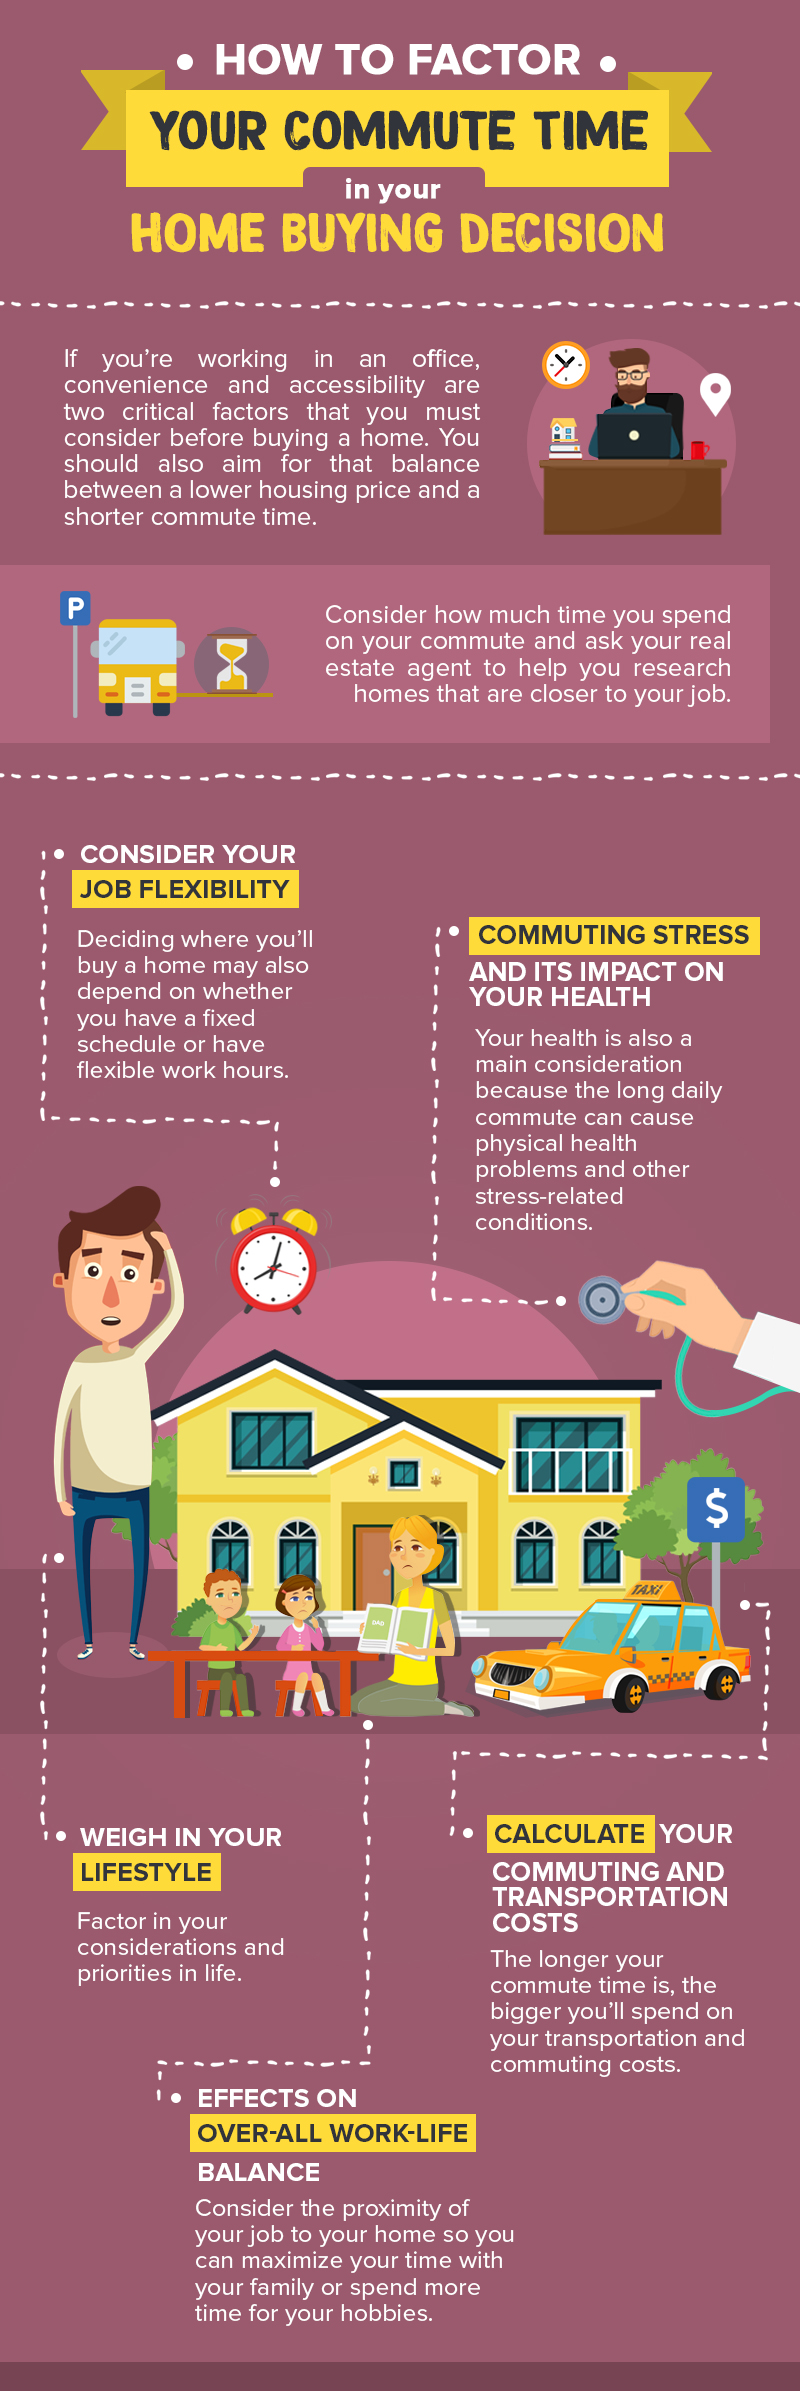 How To Factor Commute Time In Your Home Buying Decision1.jpg